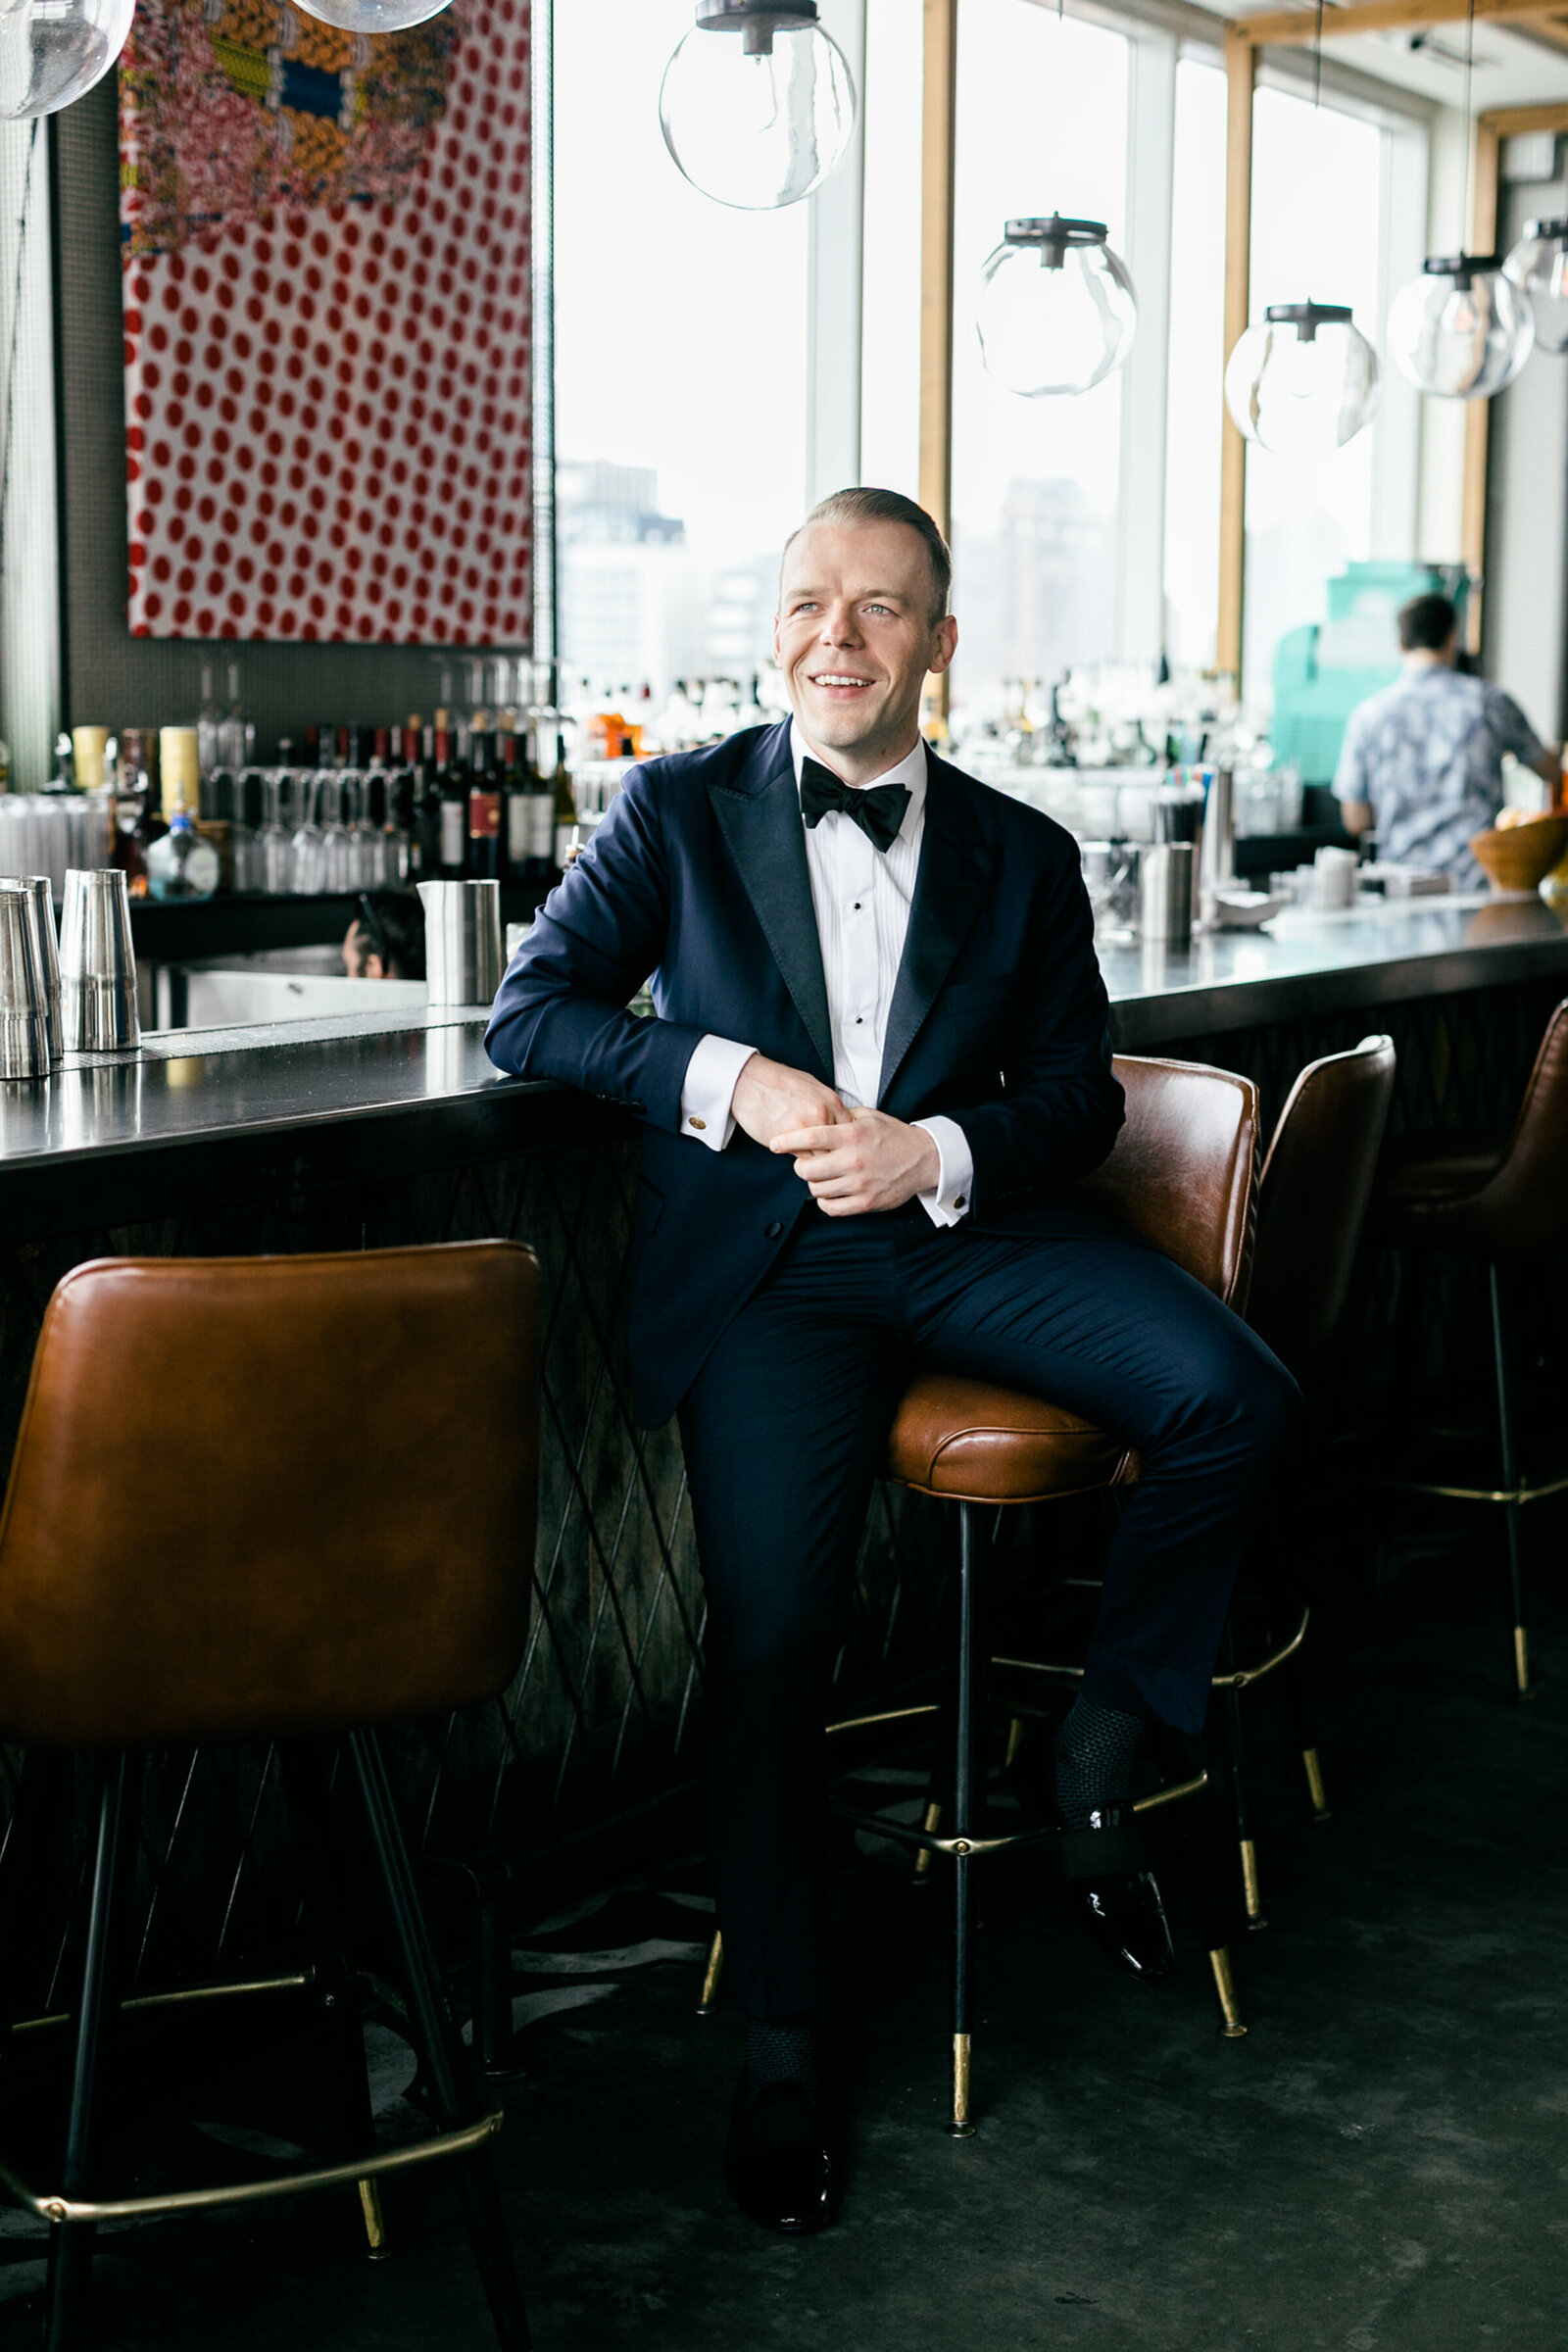 groom in tux at restaurant bar